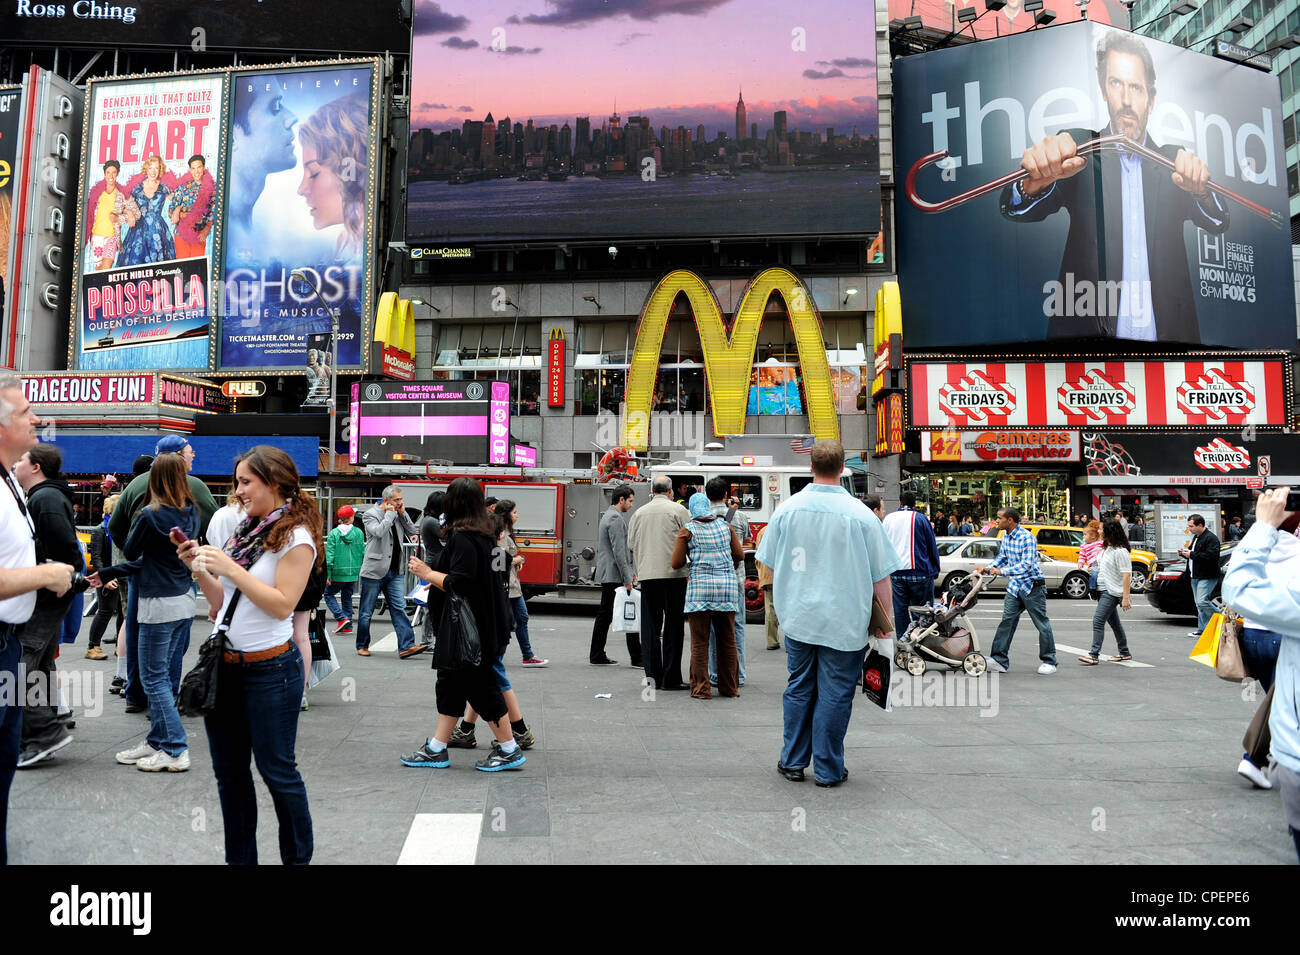 Tourists in Times Square, New York - Stock Image